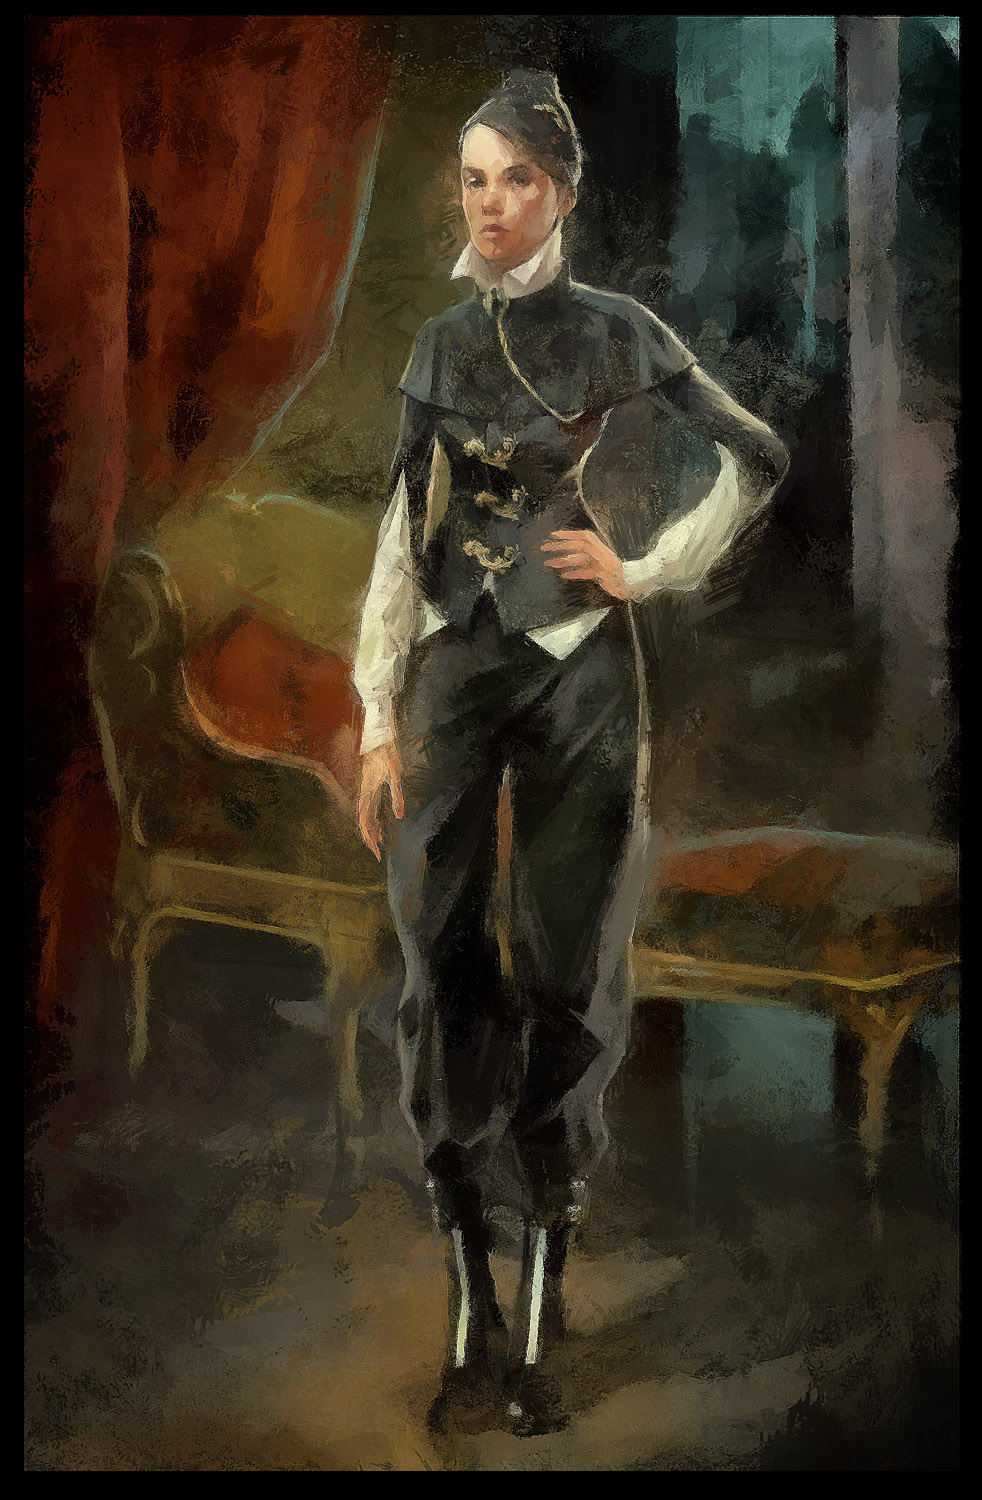 Sokolov Painting The Empress And The Empty Set Character Art